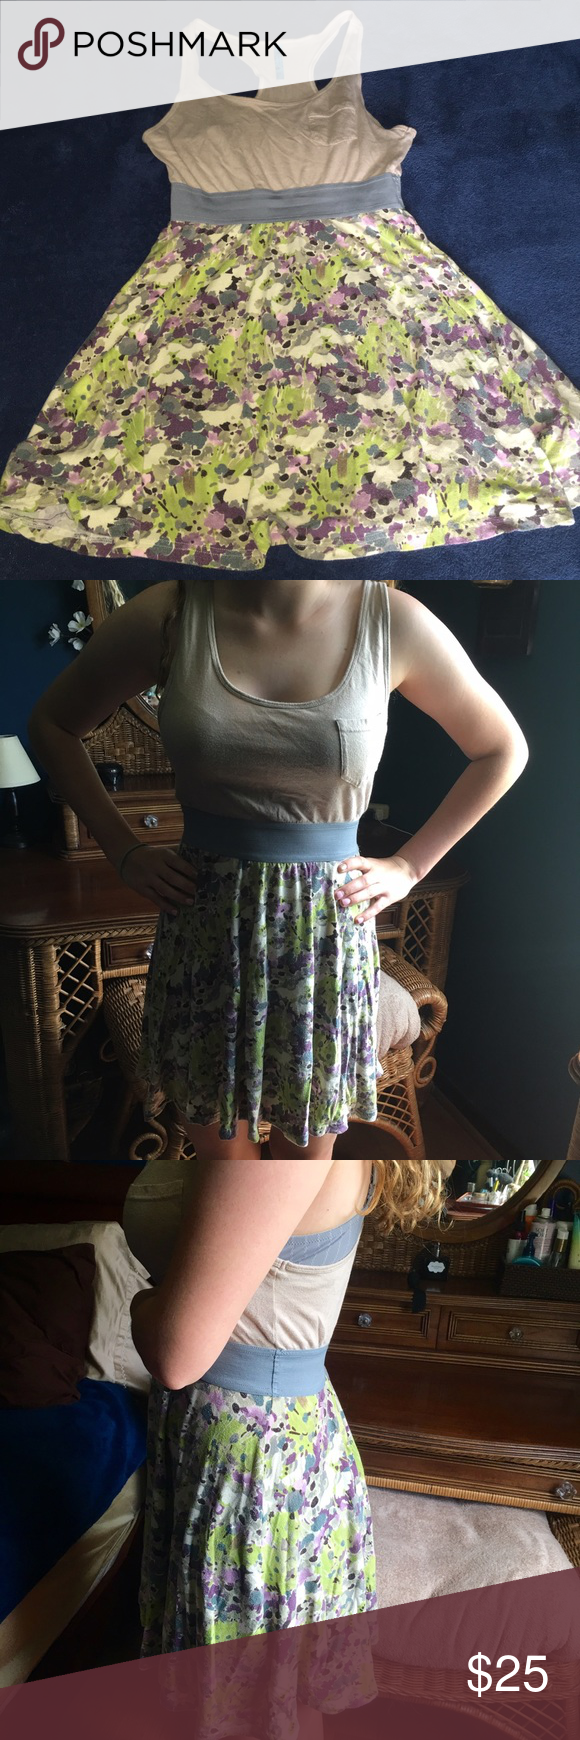 Free people dress Very soft, Gently worn FP dress. Top is tan, grey banded waist with pretty green, purple and ivory floral pattern. Bought for my daughter and it's to big. Free People Dresses